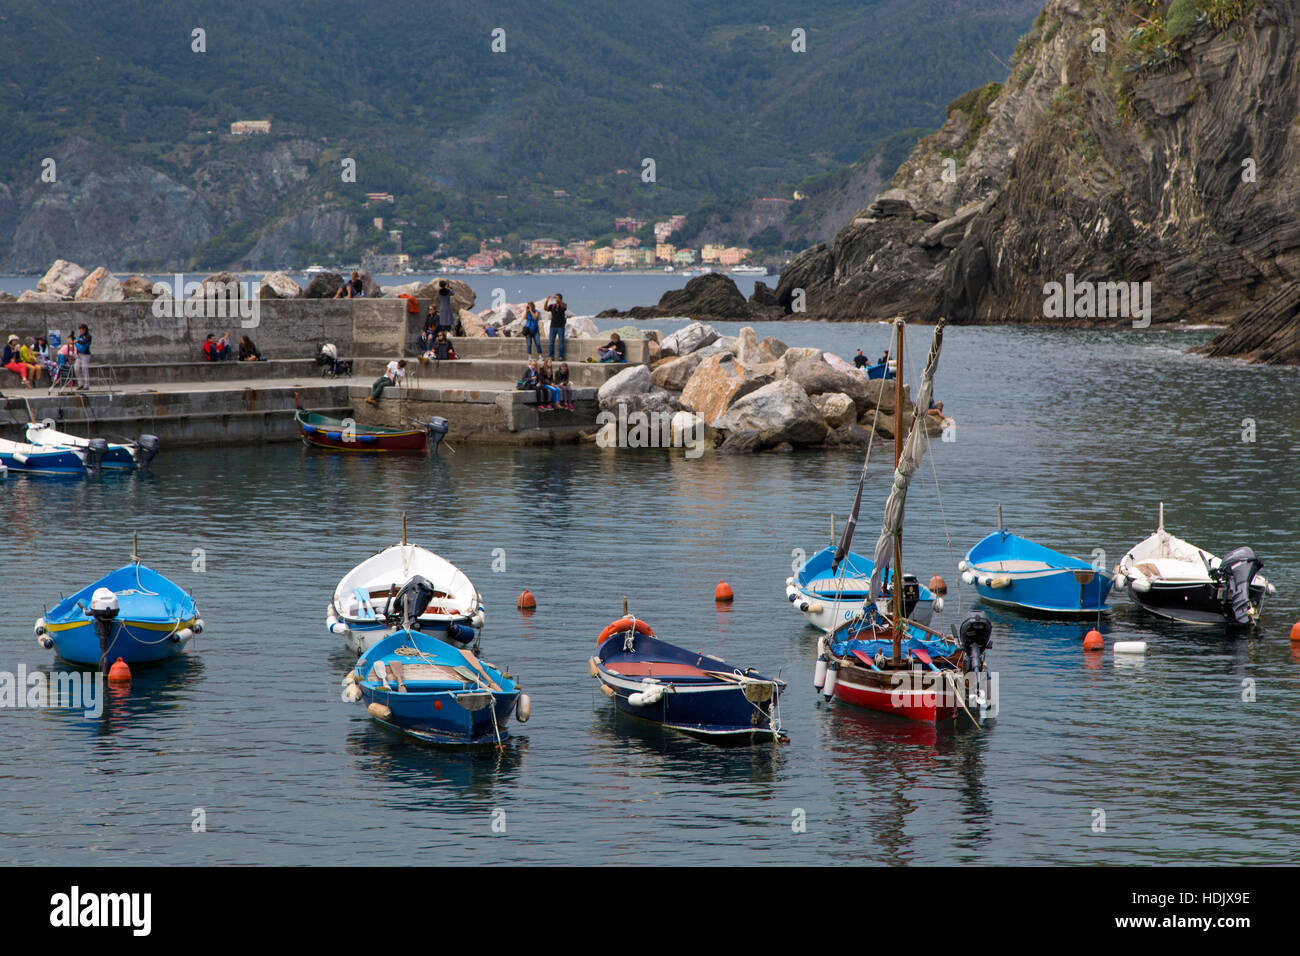 Boats in the tiny harbor of Vernazza - one of the Cinque Terre, Liguria, Italy - Stock Image